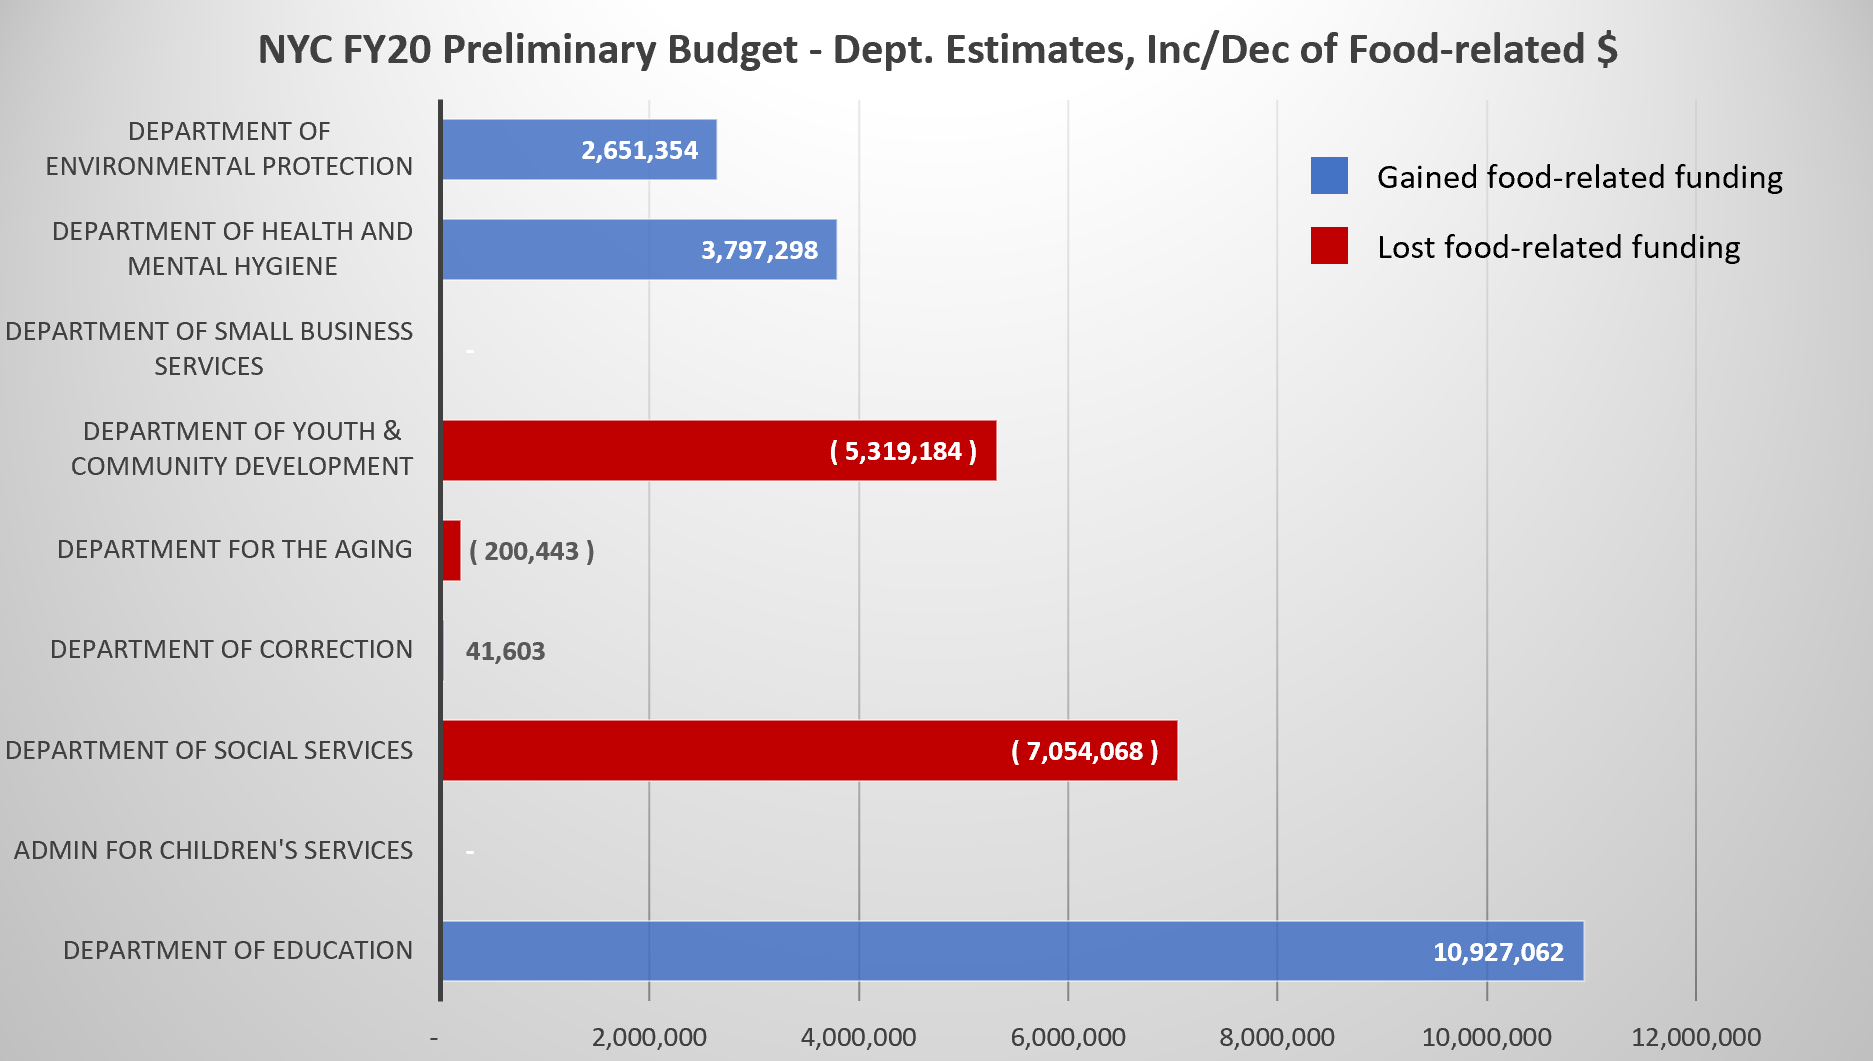 Source:   Departmental Estimates. The City of New York - Fiscal Year 2020